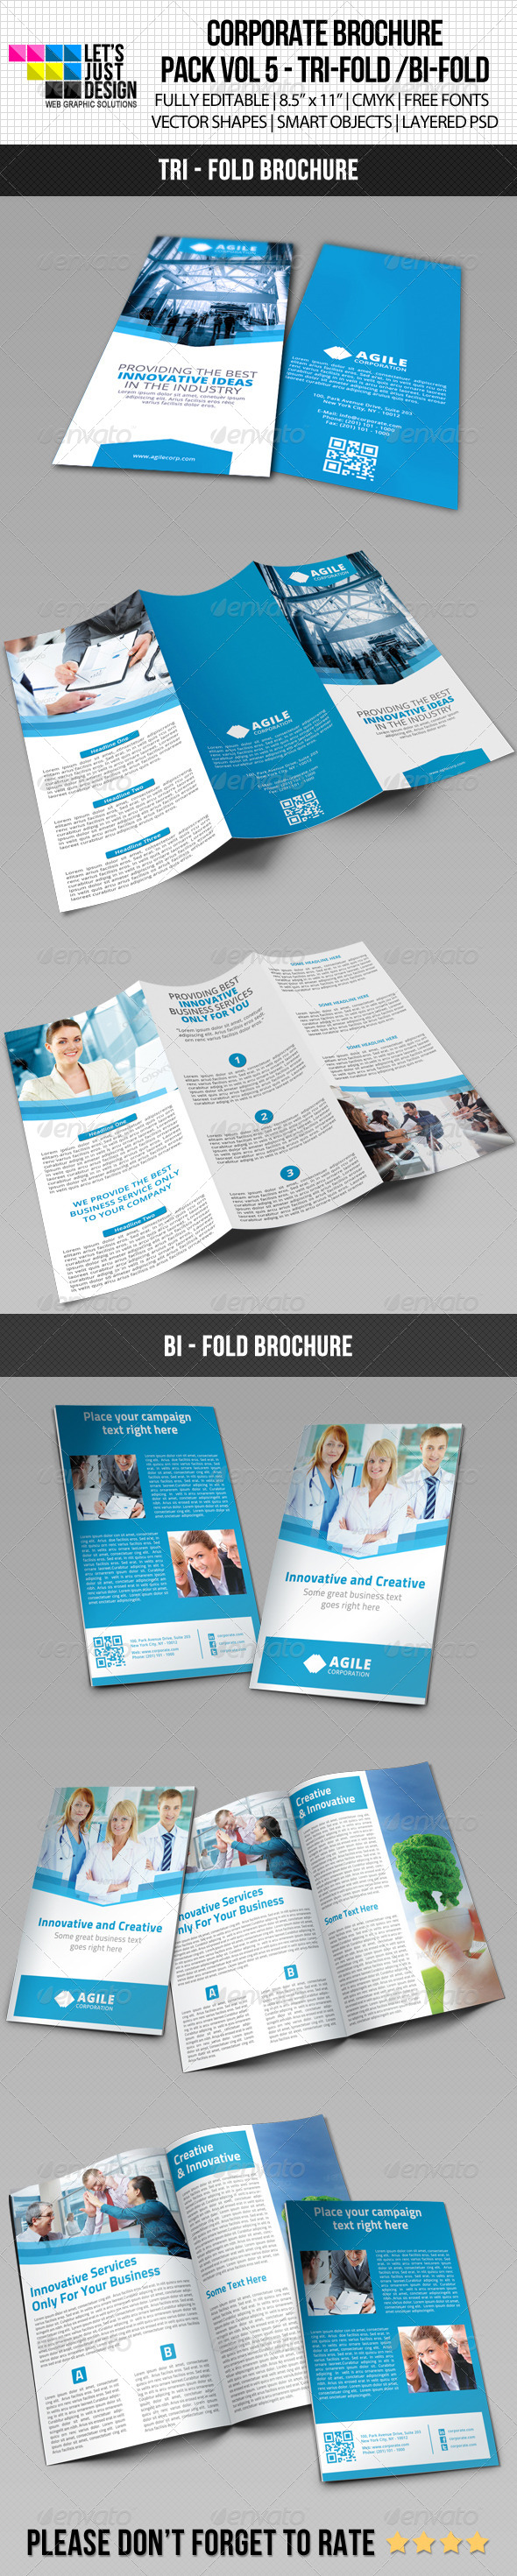 GraphicRiver Creative Corporate Brochure Pack Vol 5 6619559